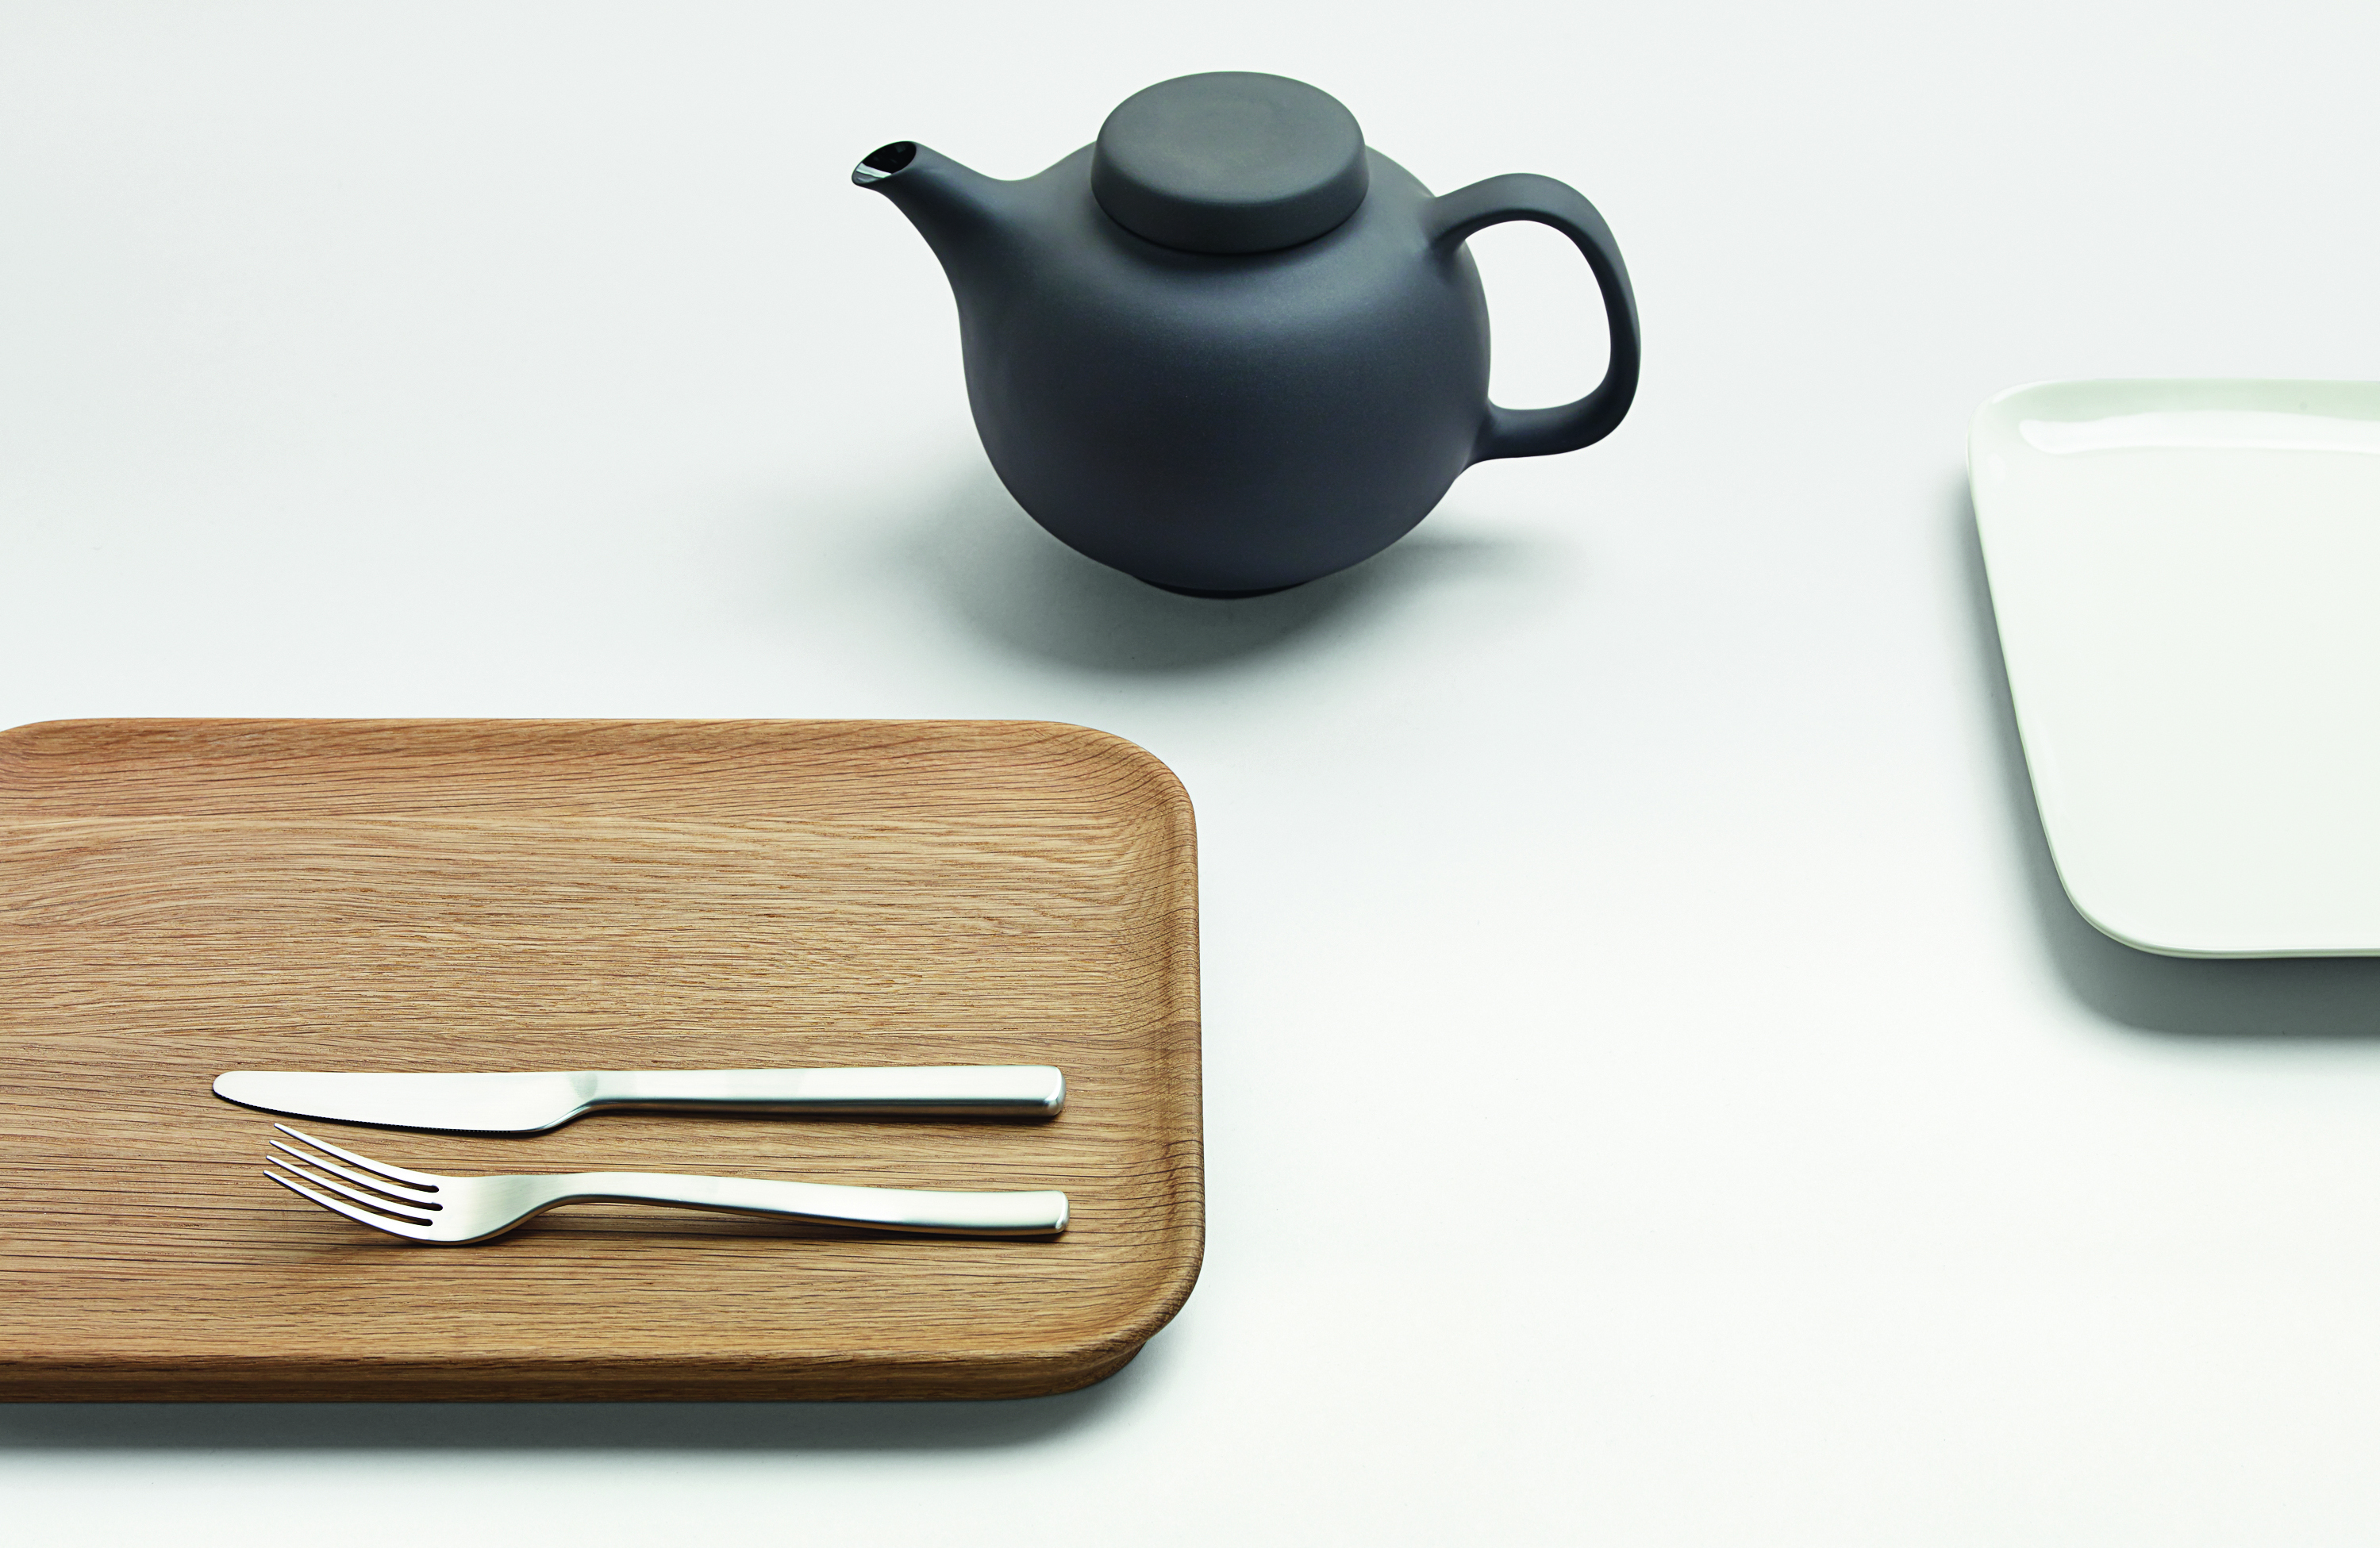 Olio tableware by Barber Osgerby, from our book Barber Osgerby, Projects